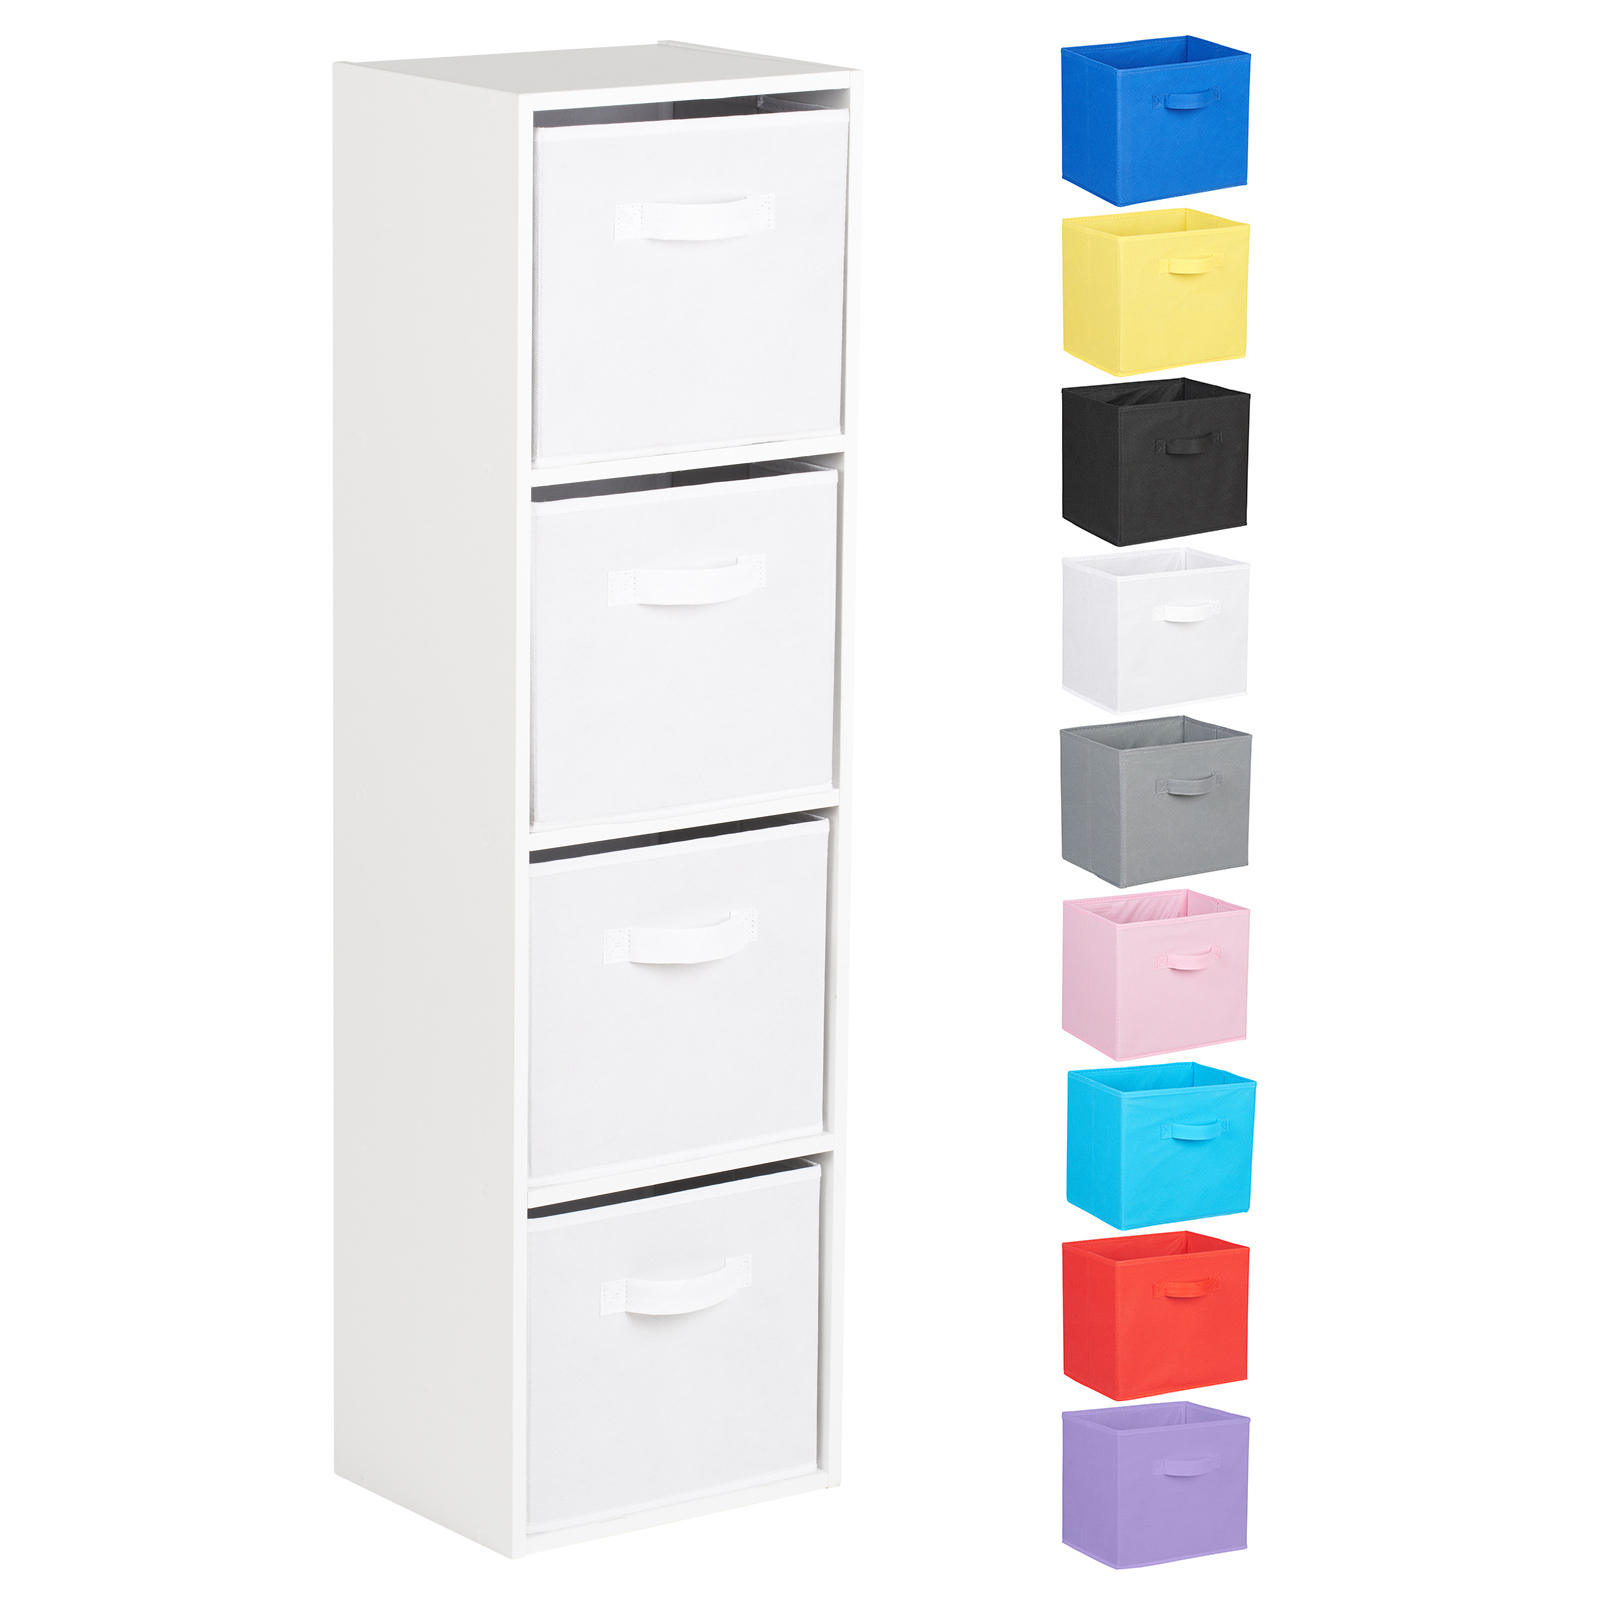 Hartleys-4-Tier-White-Bookcase-Wooden-Display-Shelving-Unit-amp-Fabric-Storage-Box thumbnail 44